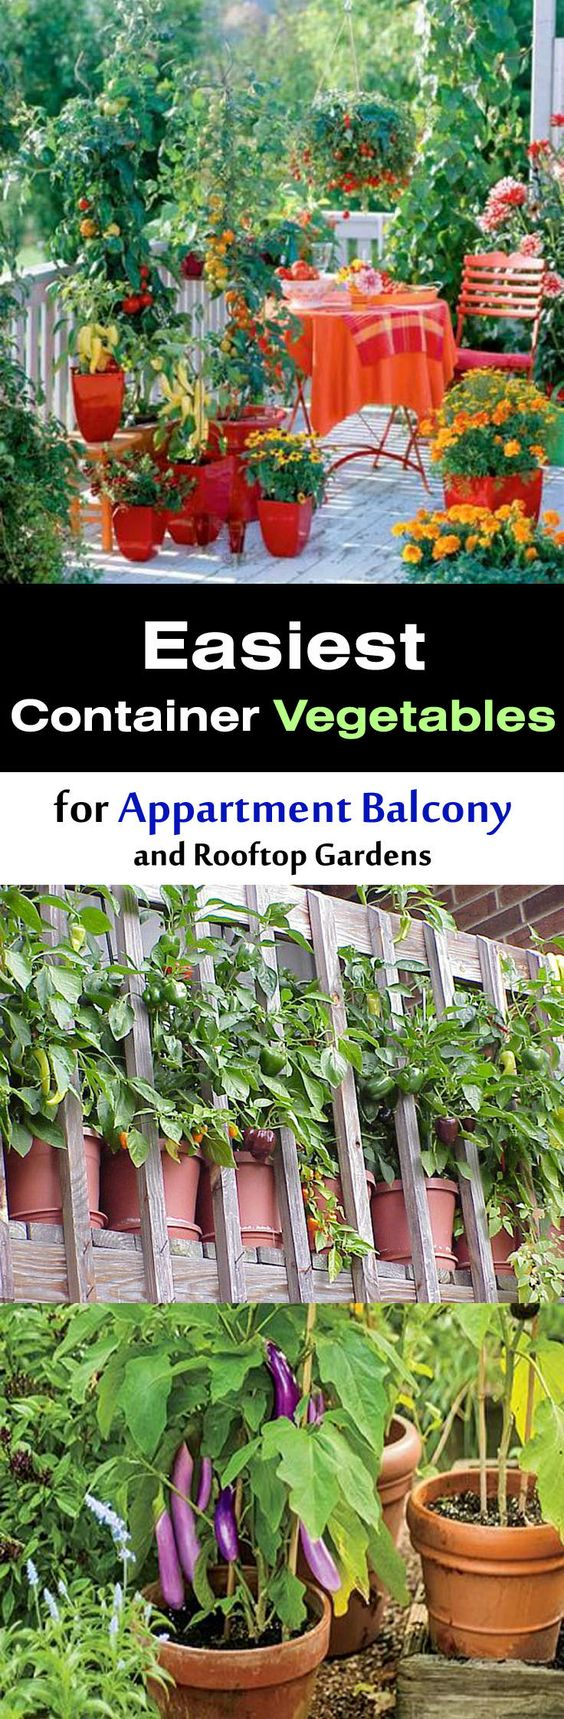 Container vegetable gardening vegetable gardening and for Balcony vegetable garden